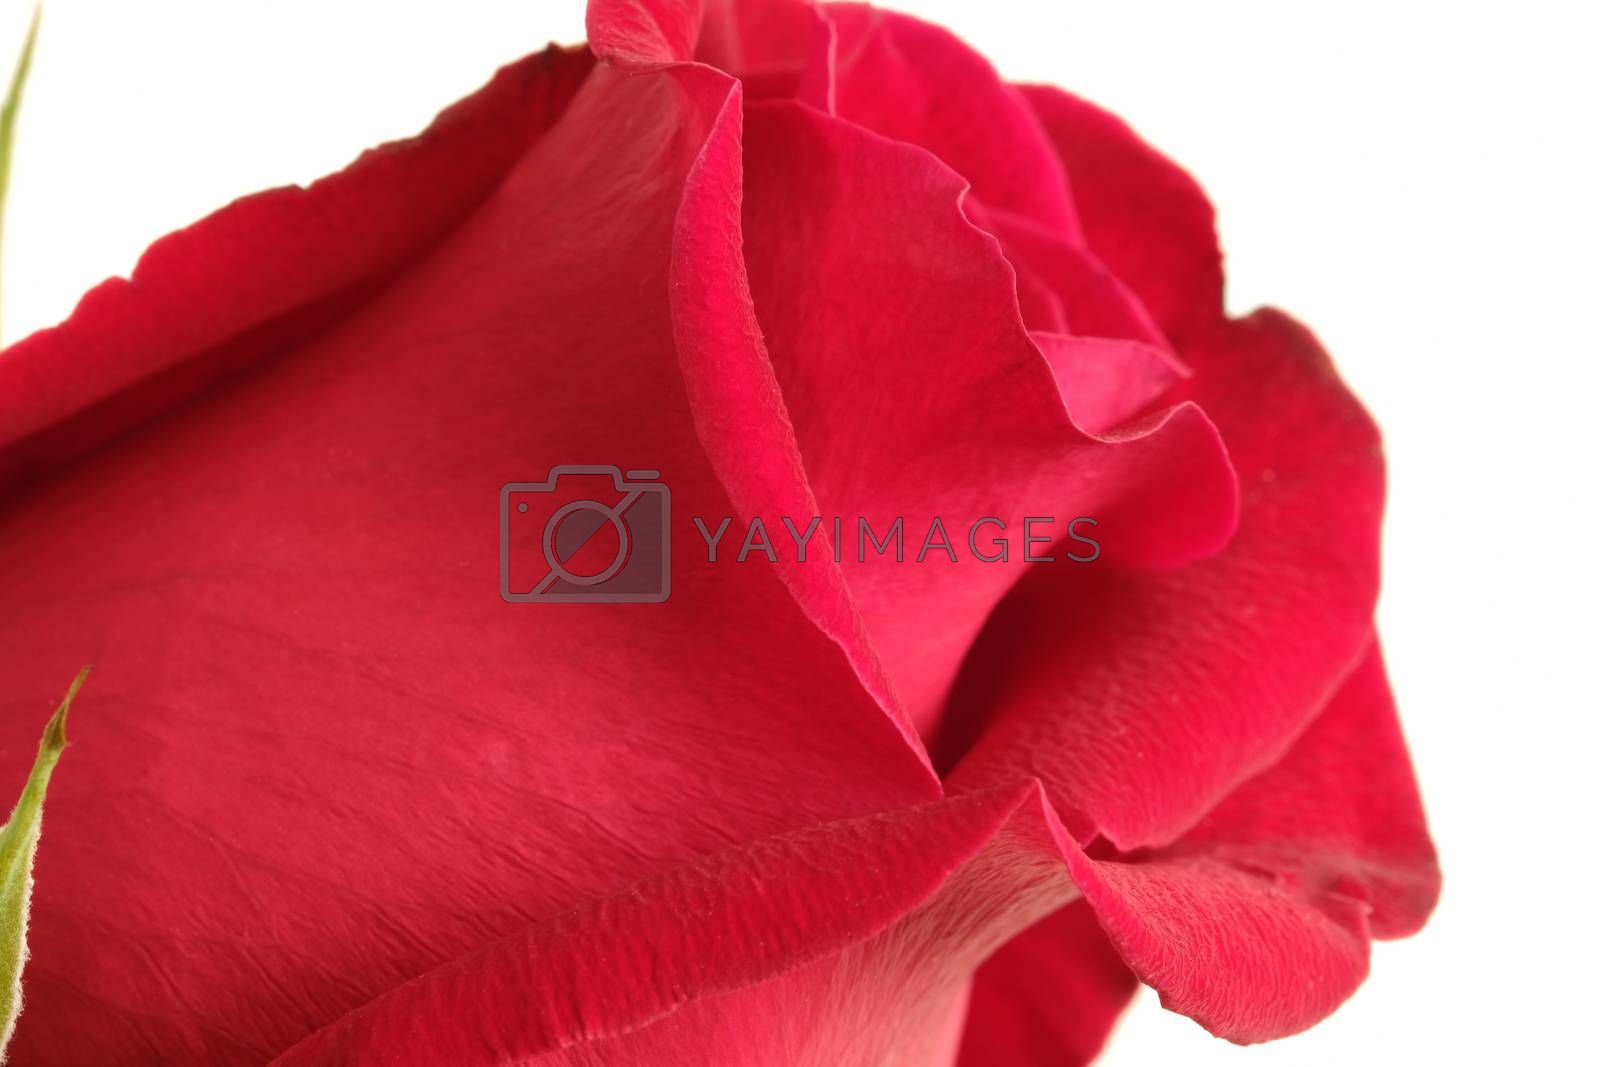 a red rose closeup by Nawoot